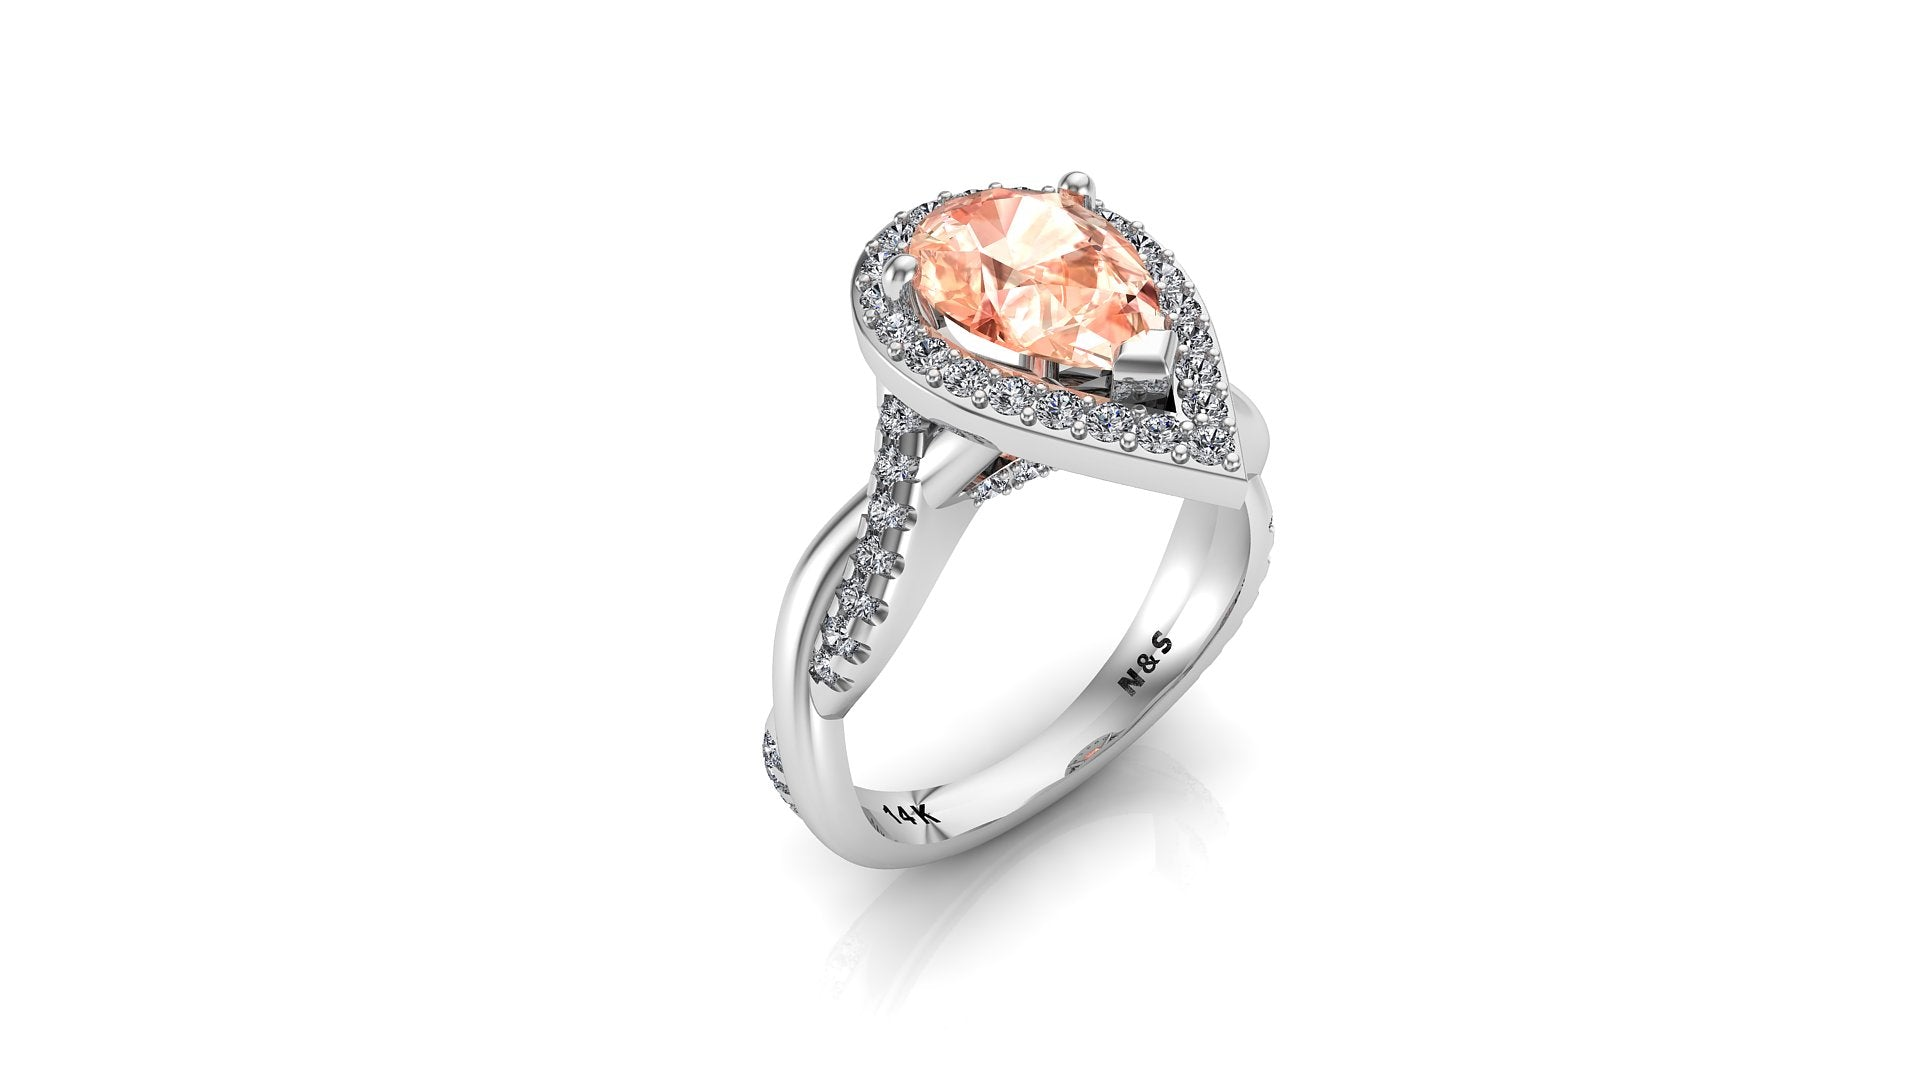 9x6mm (1.30ct) Single Diamond Twist Pear Cut Morganite Diamond Halo 14K Gold Ring BSAQ012